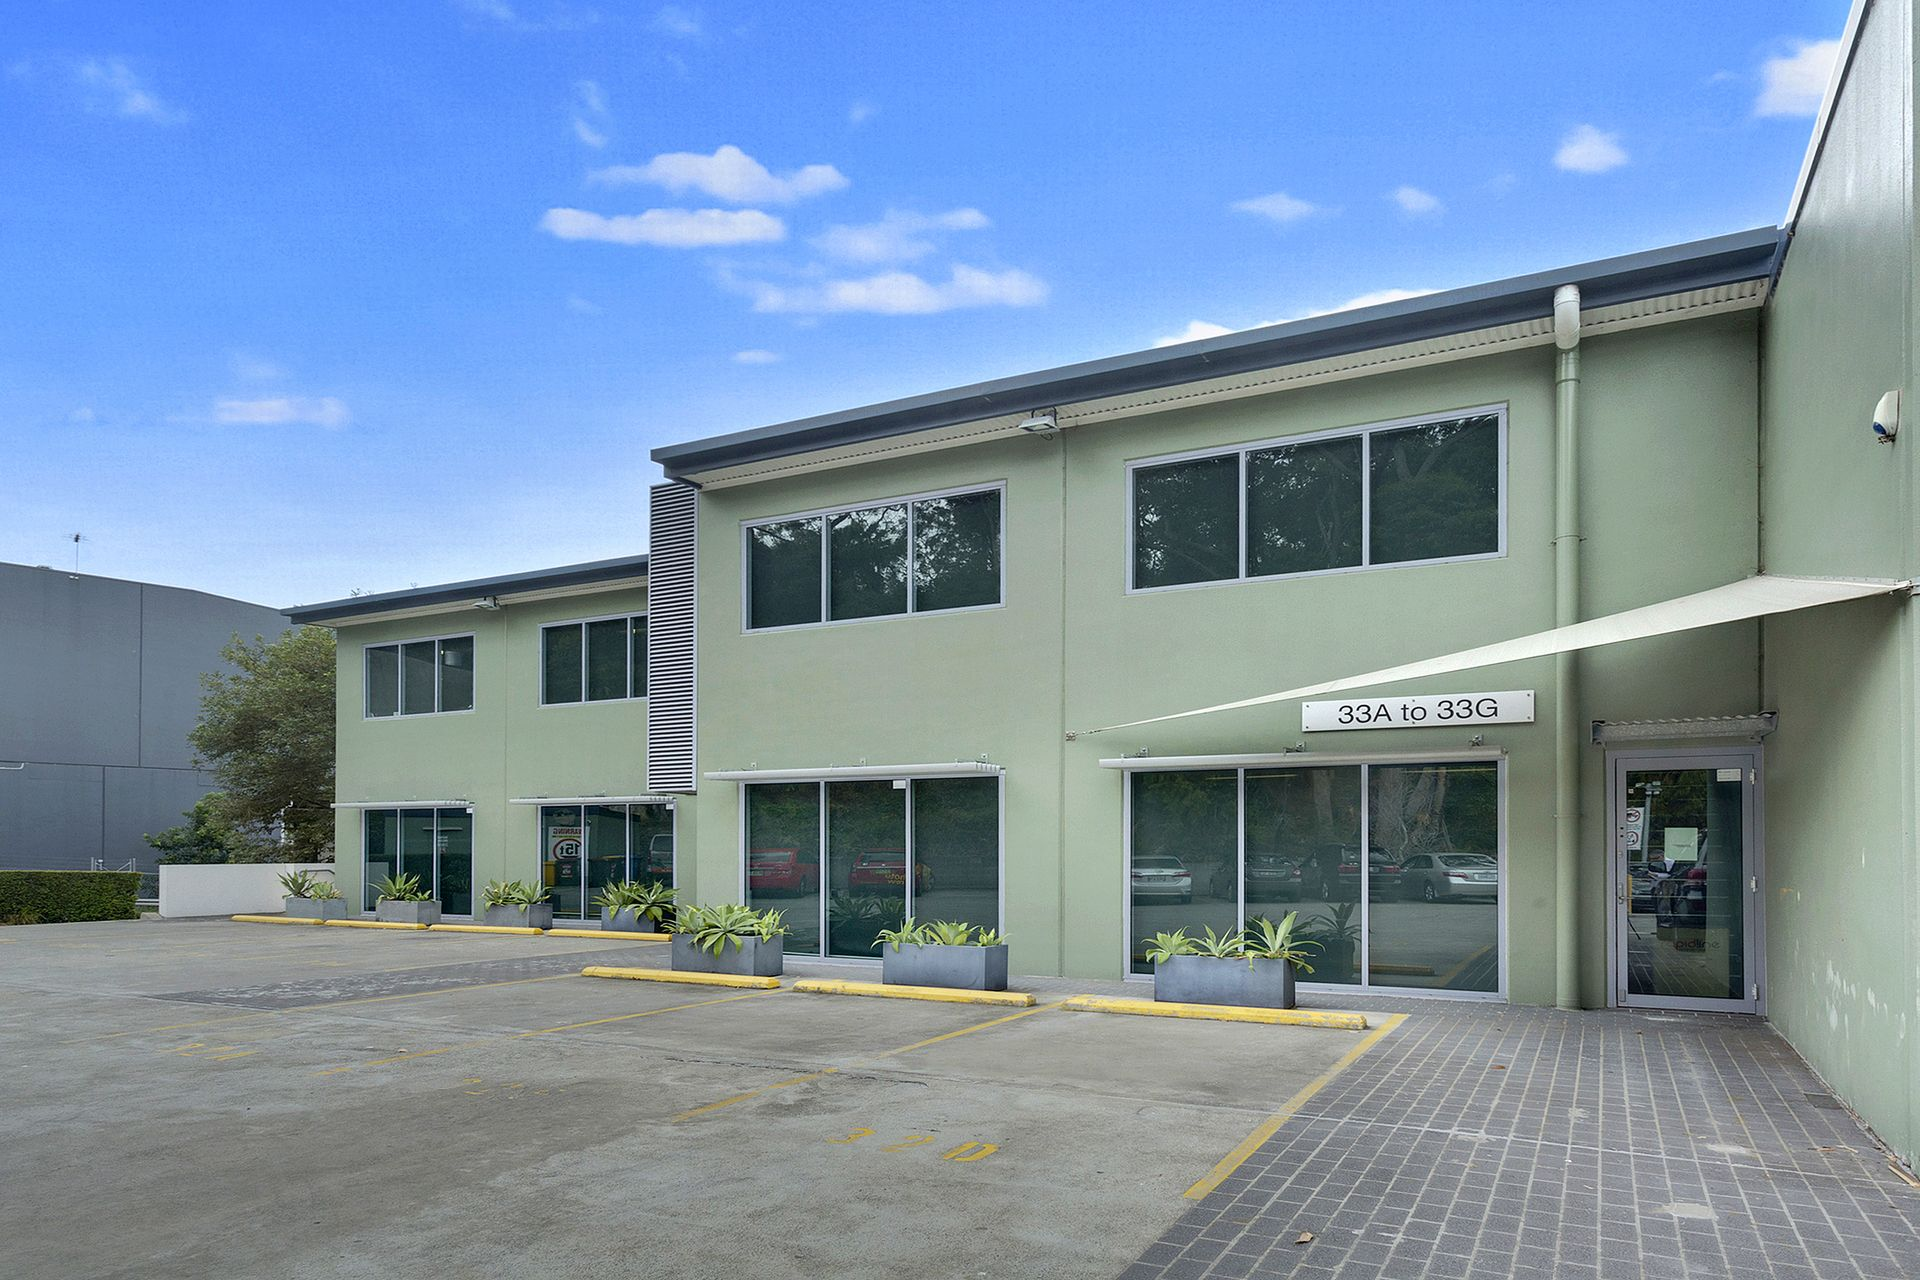 14 High Quality Office Suites for Sale or Lease